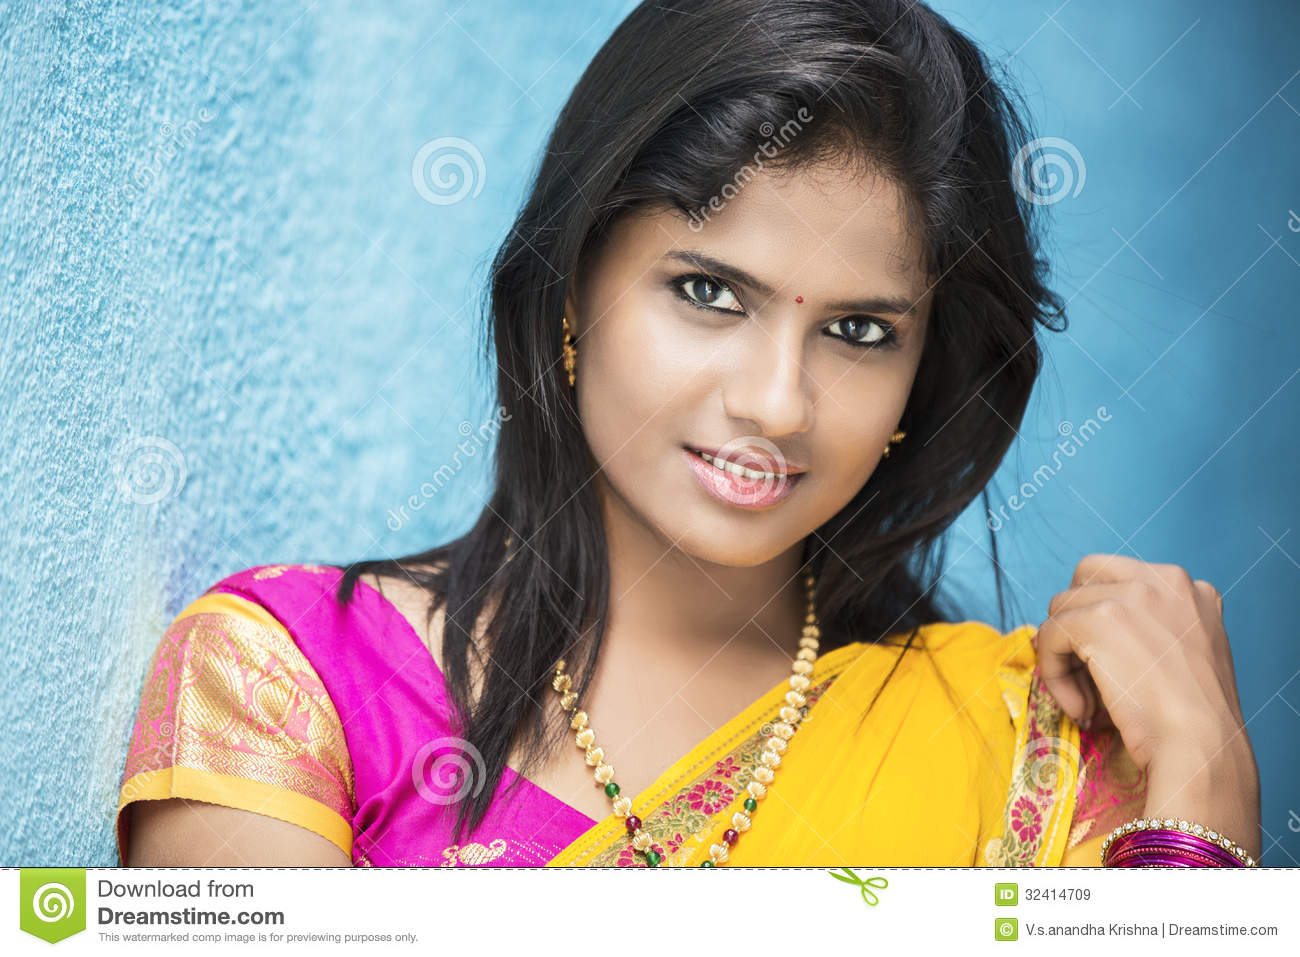 Indian xxxpron image sexy pic